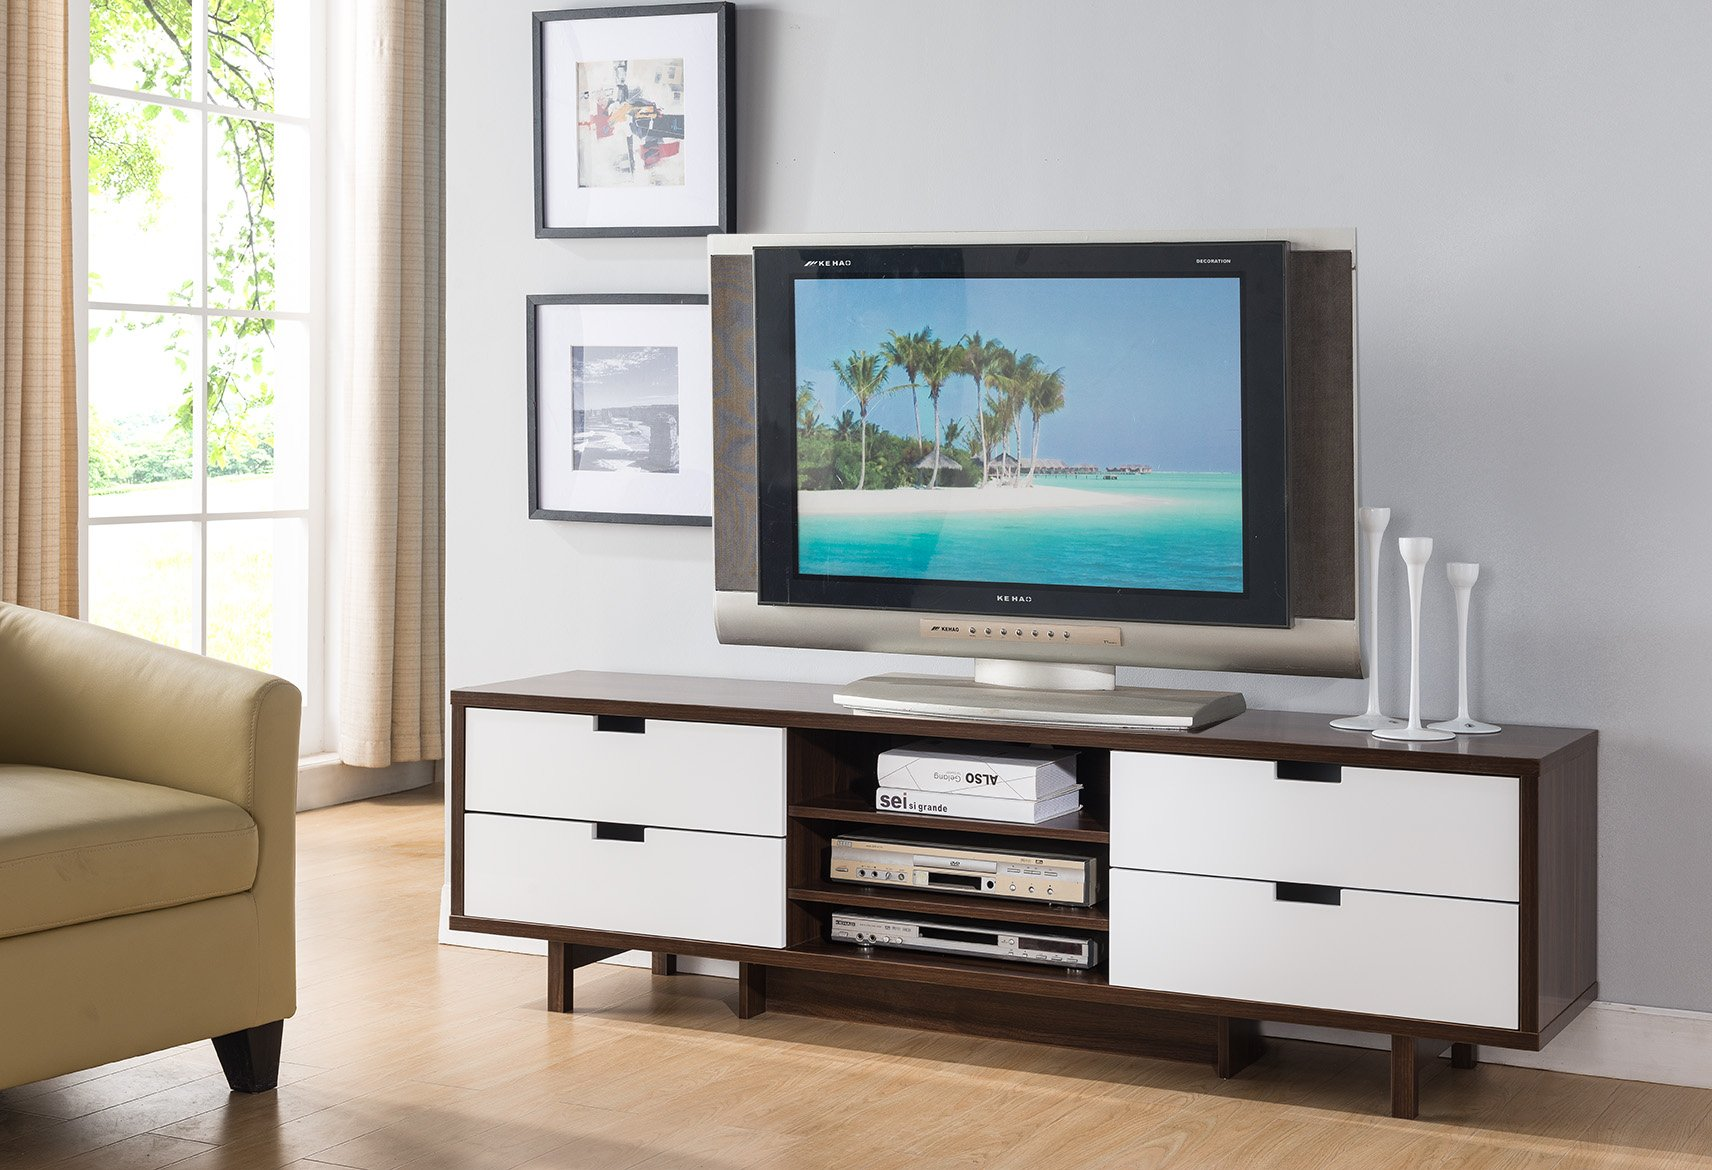 "SMART HOME Idoneus 60"" Mid Century TV Stand Media Cabinet (Dark Walnut & Glossy White) - 1 x Idoneus 60"" mid century TV stand media cabinet Four drawers and three center display decks Wood, MDF Chipset, Laminate - tv-stands, living-room-furniture, living-room - 81E5sdfzvYL -"